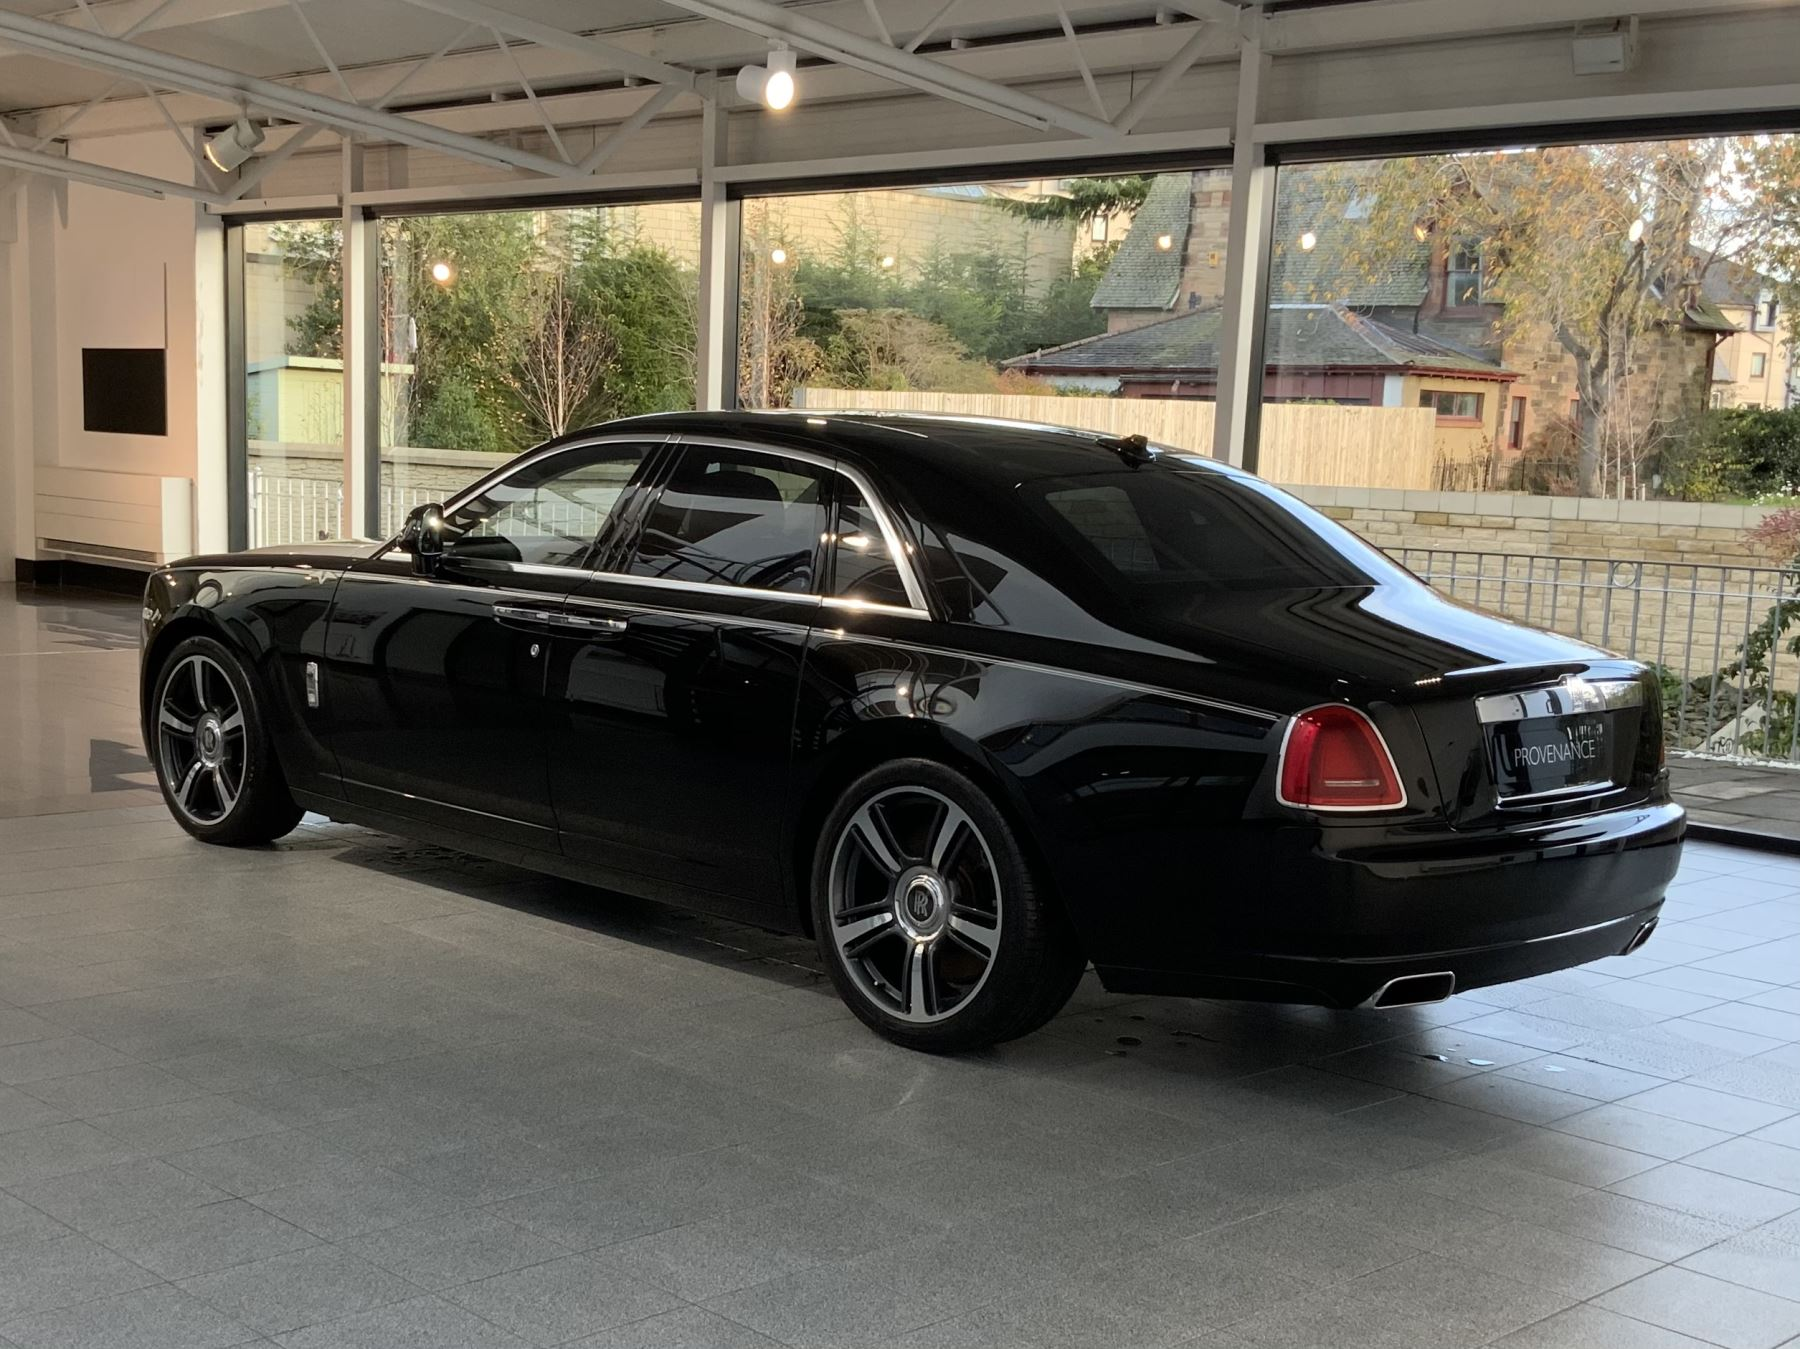 Rolls-Royce Ghost V-SPEC 4dr Auto image 10